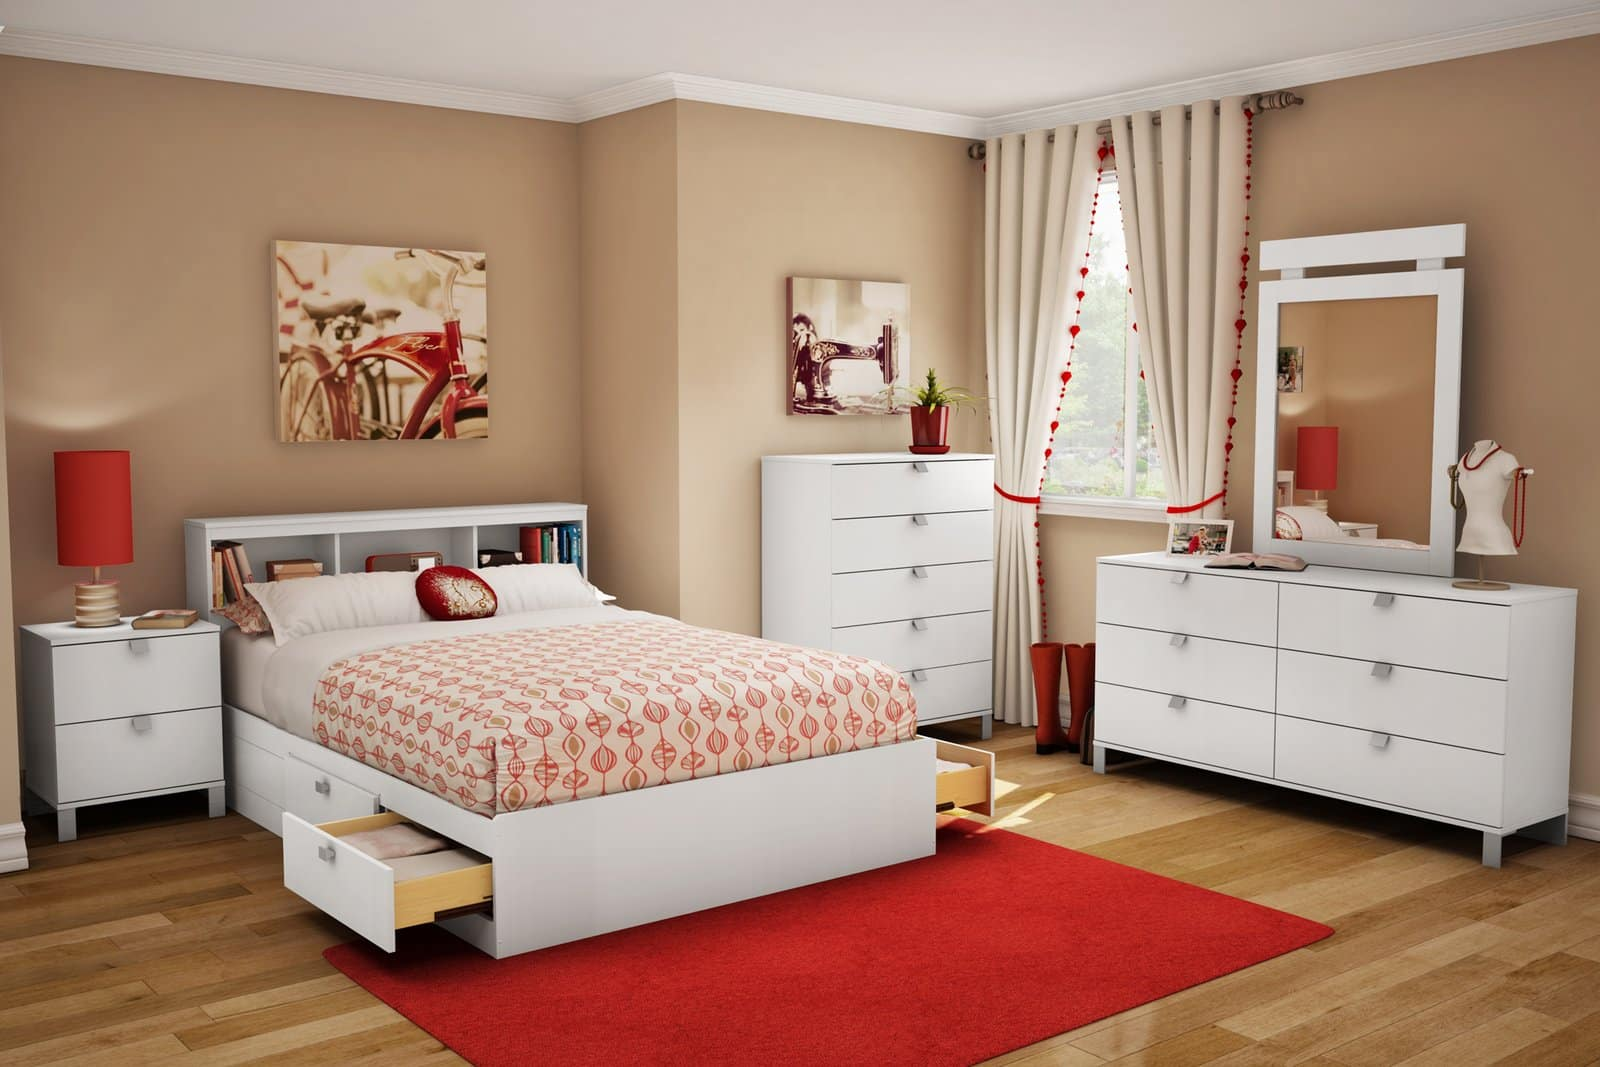 Big Girl Room Interior Design and Decoration Ideas. Red carpet and the bed with built-in storage drawers